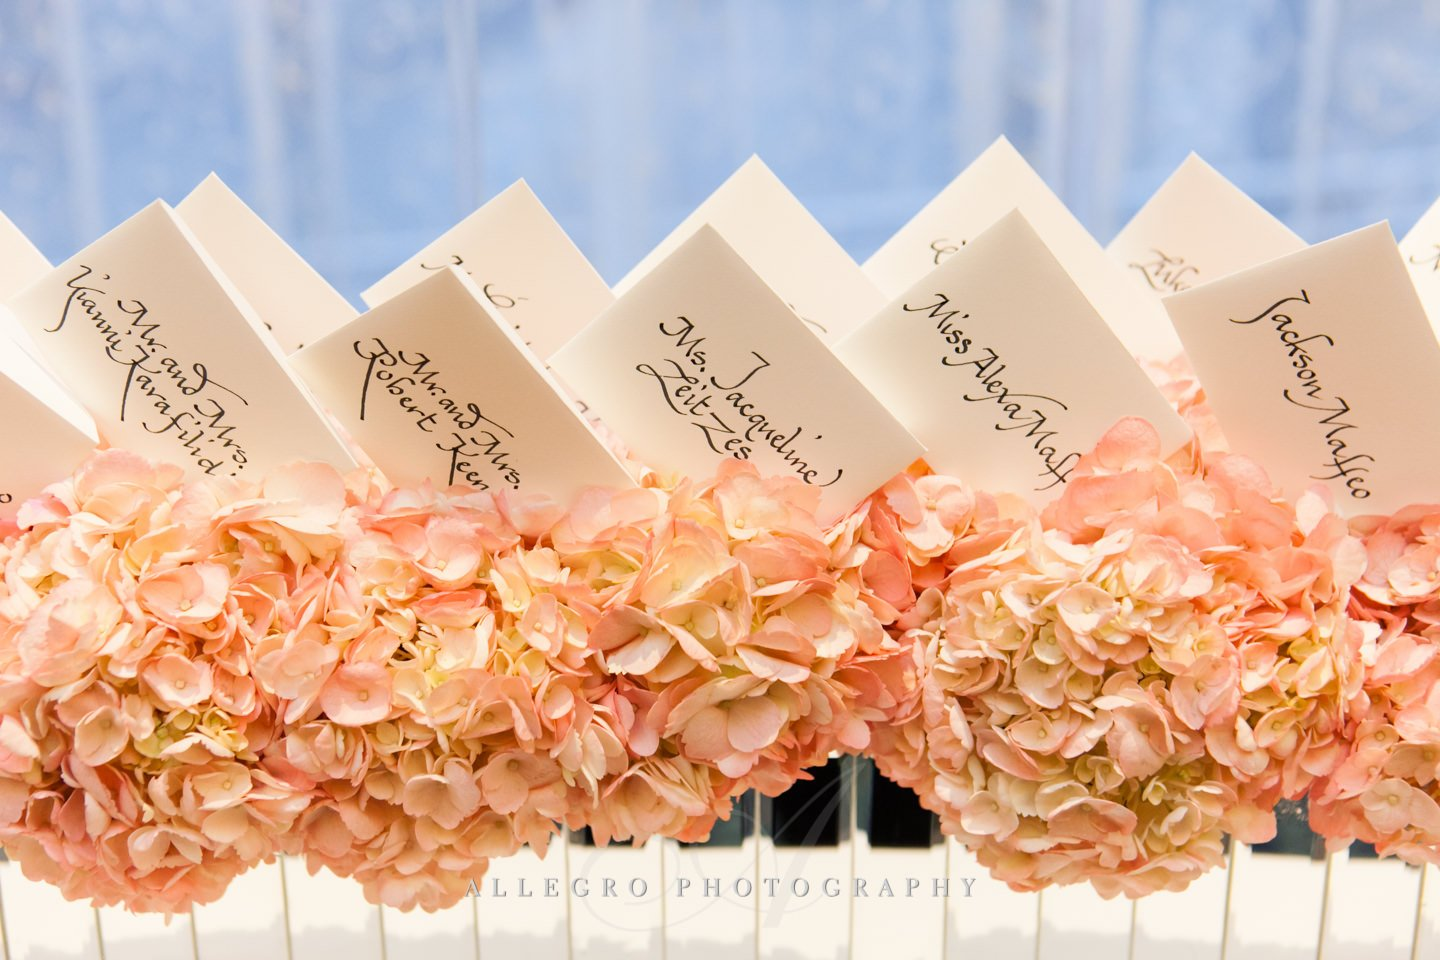 Escort card floral hedge by gregory costa st john at flou(-e)r- photo by allegro photography